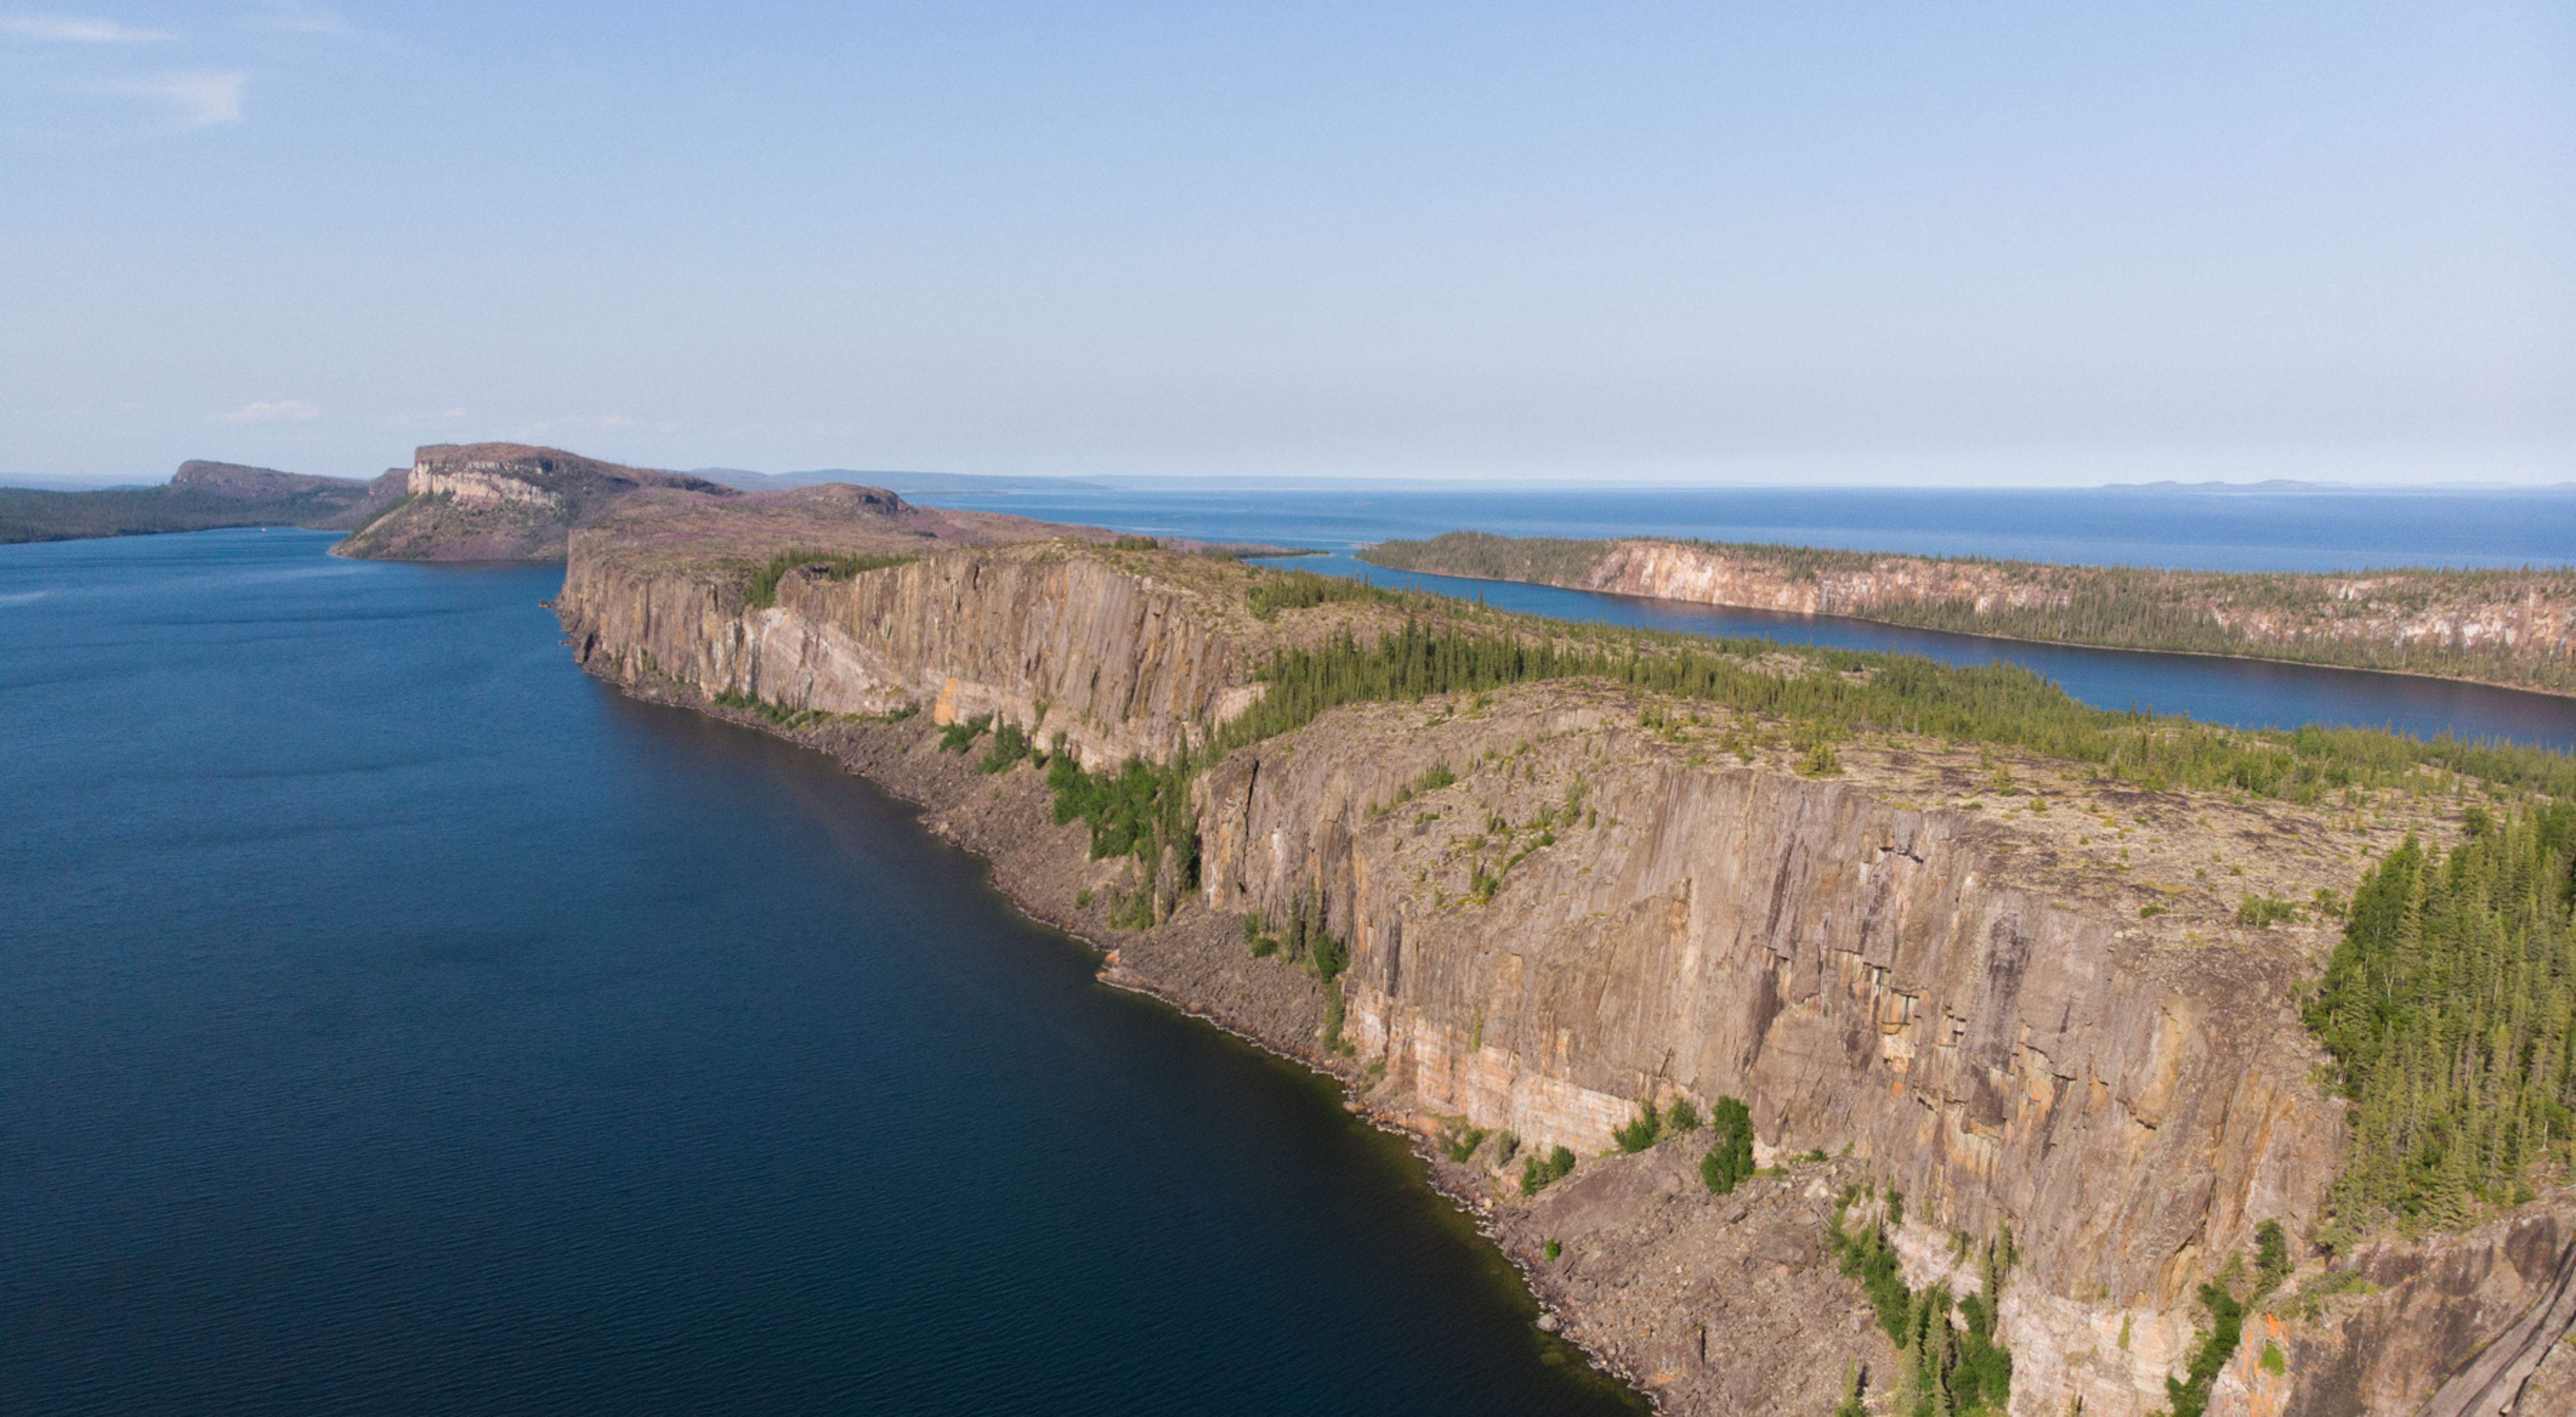 Cliffs of the Pethei Peninsula overlooking Great Slave Lake in the Northwest Territories.